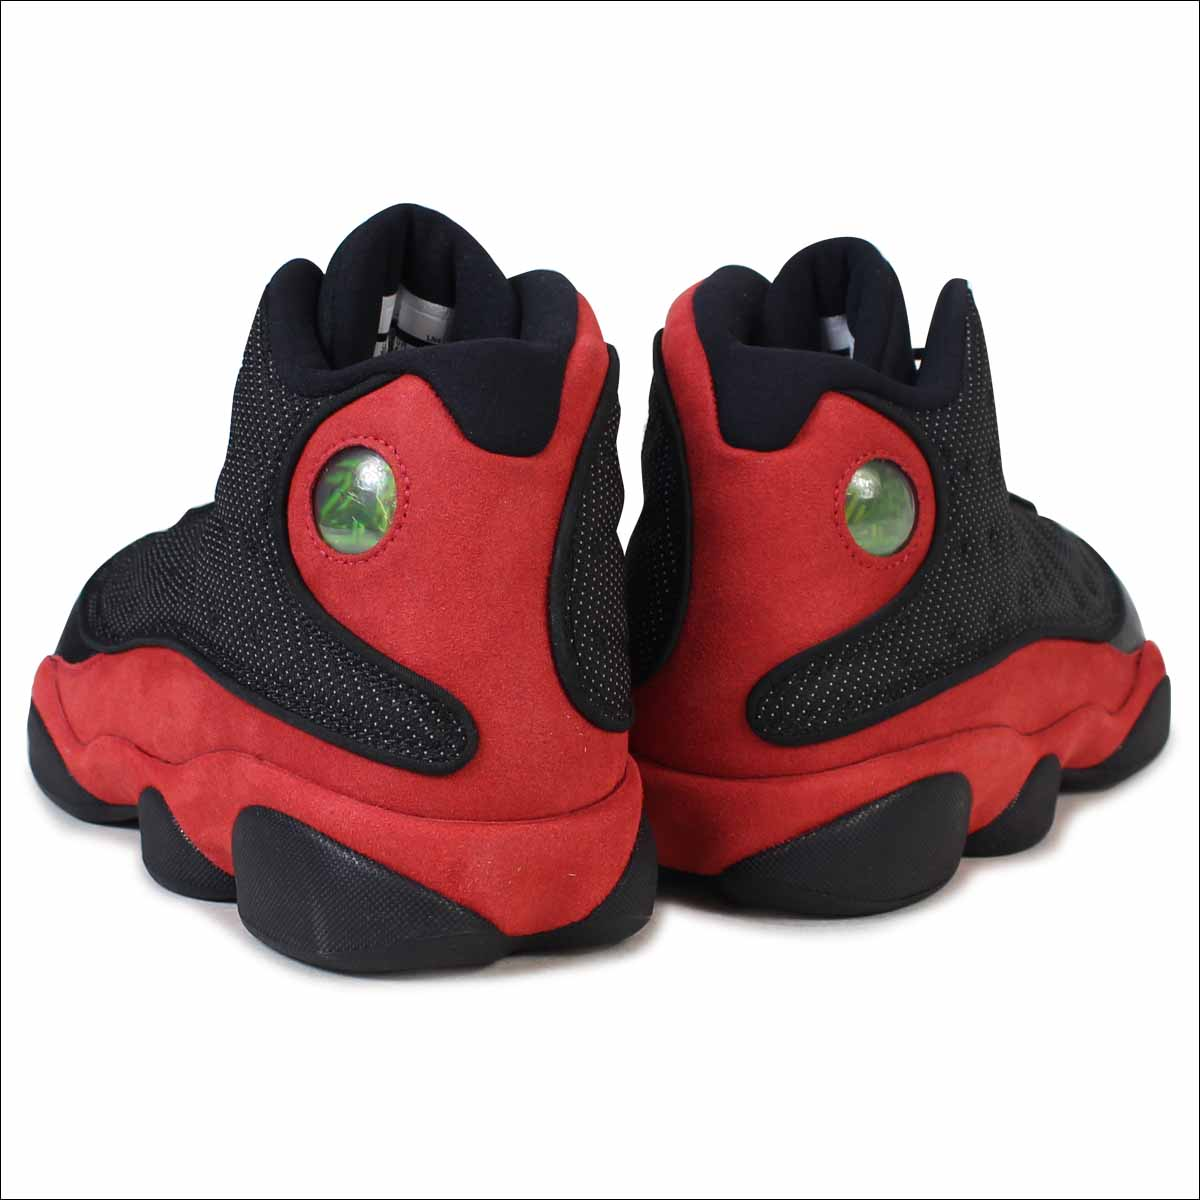 31fd4108ef9 ... NIKE Nike Air Jordan 13 nostalgic sneakers AIR JORDAN 13 RETRO 414,571- 004 men's shoes